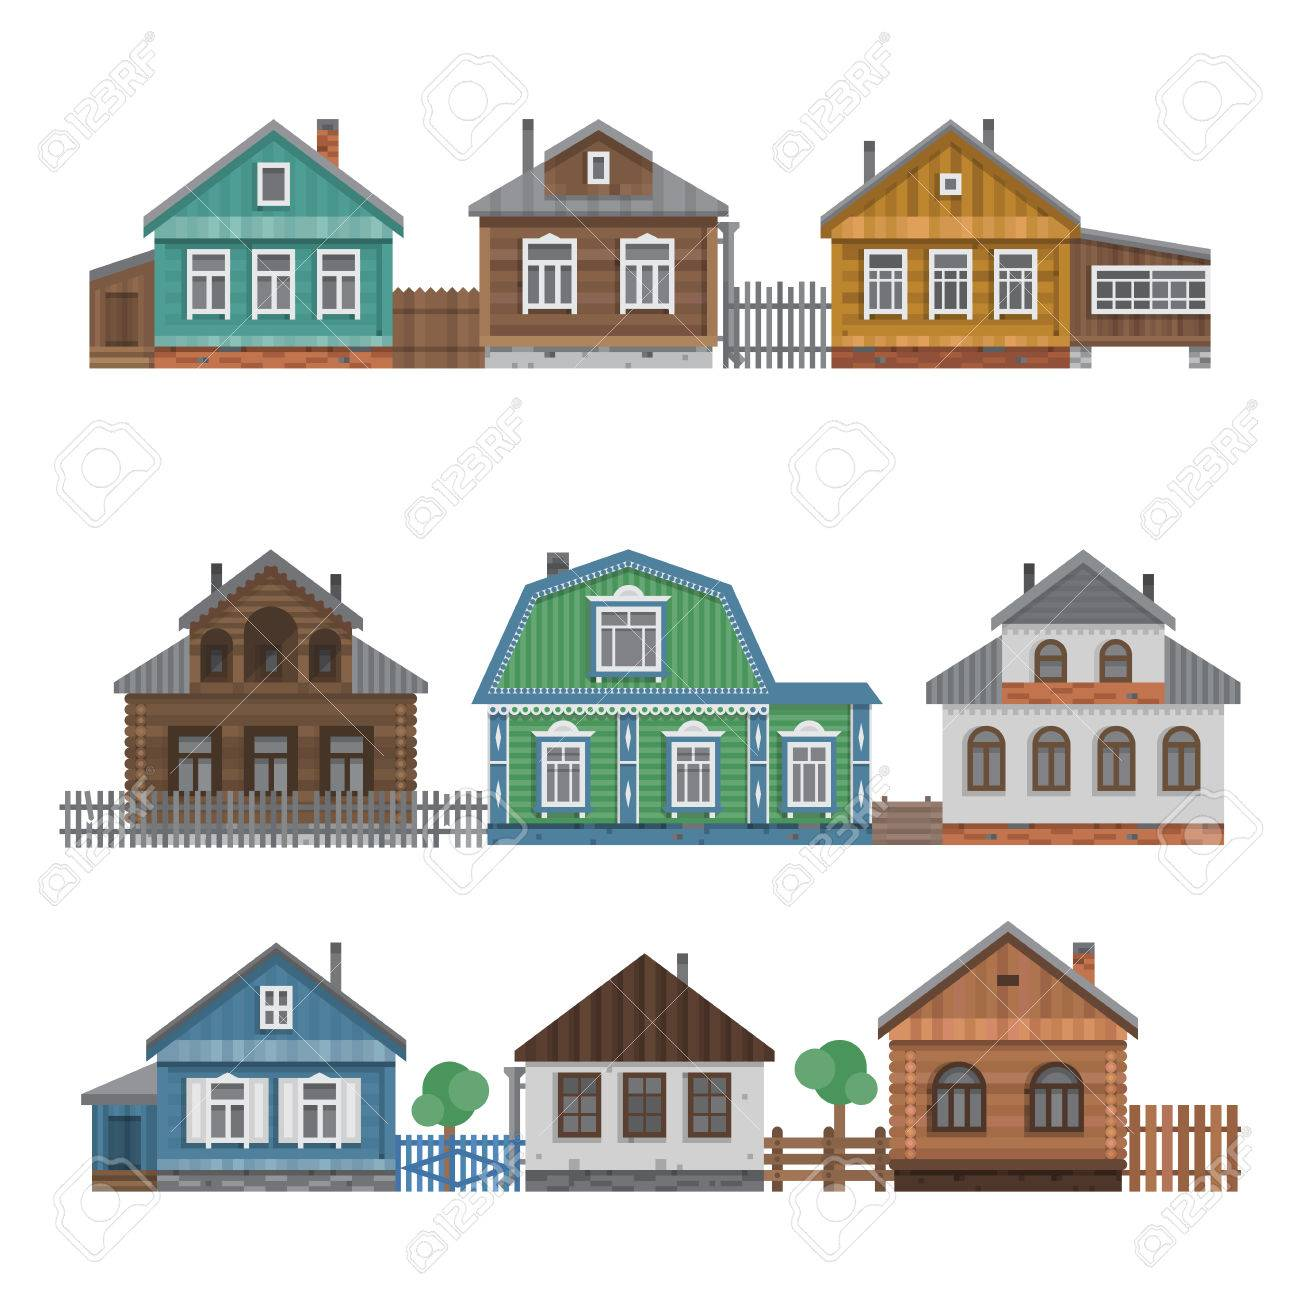 Country Houses Collection. Colorful Village Russian Old Houses Set.  Countryside Colored House. Cute